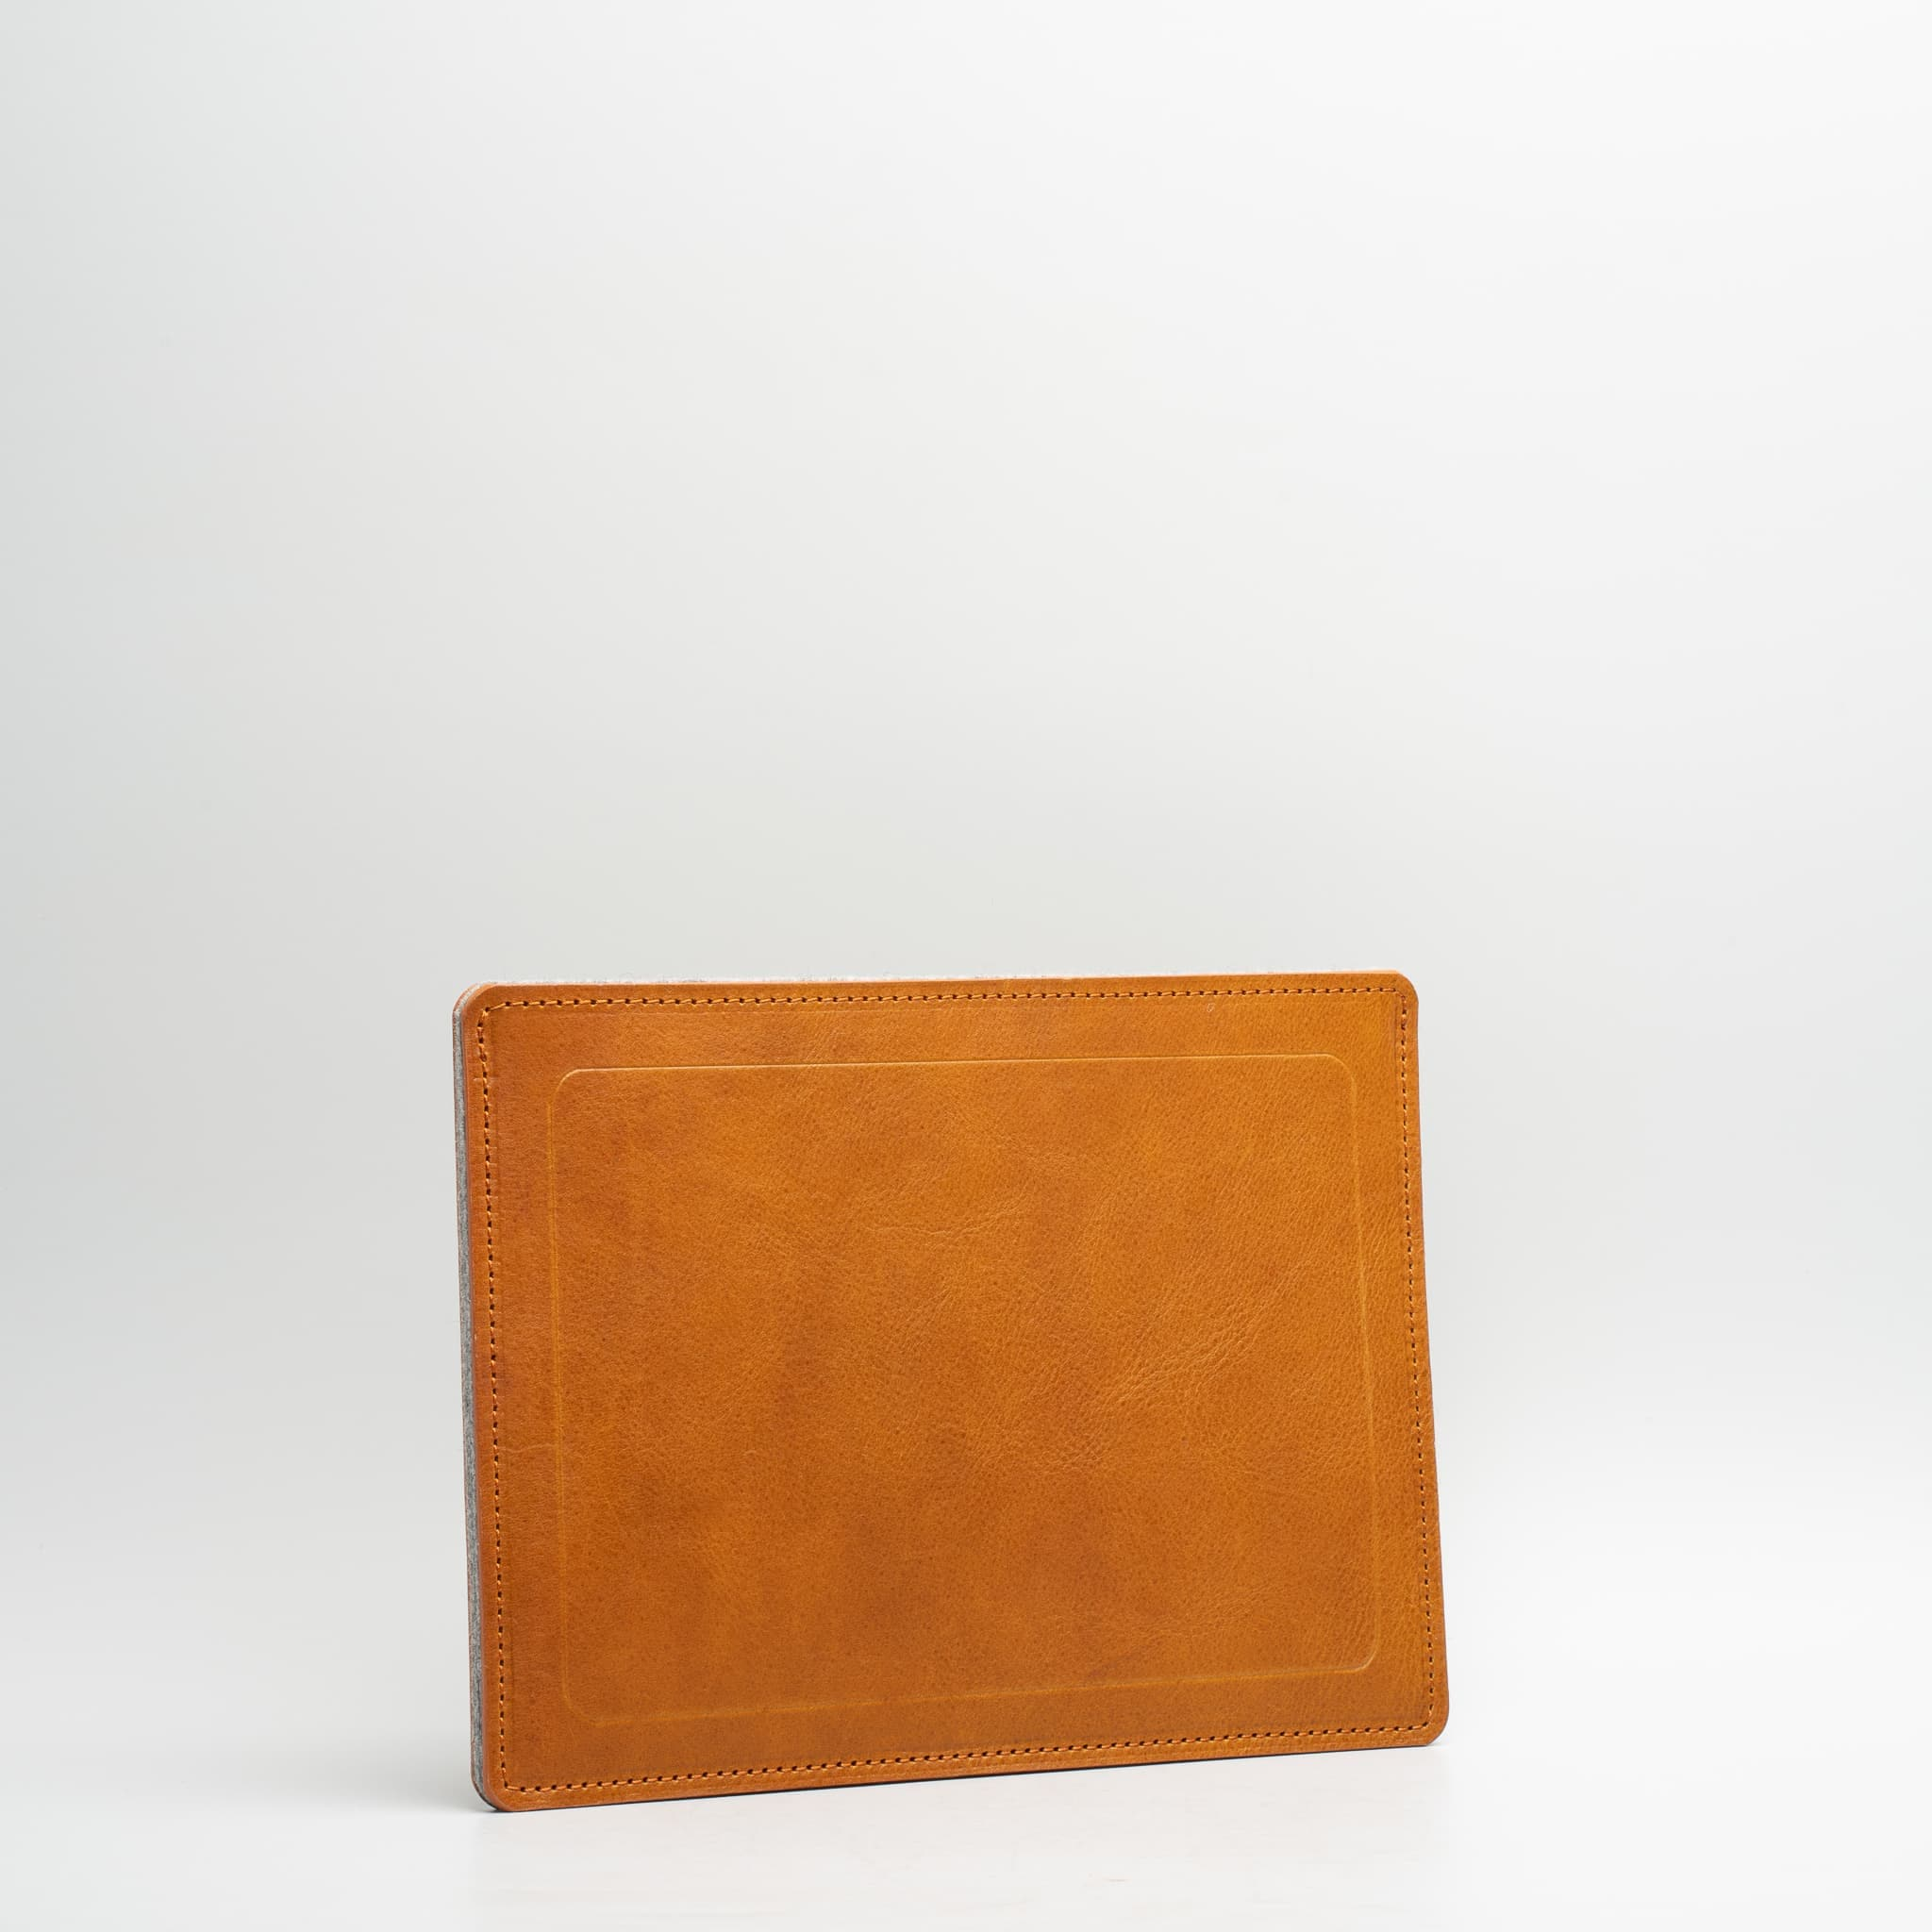 leather ipad sleeve